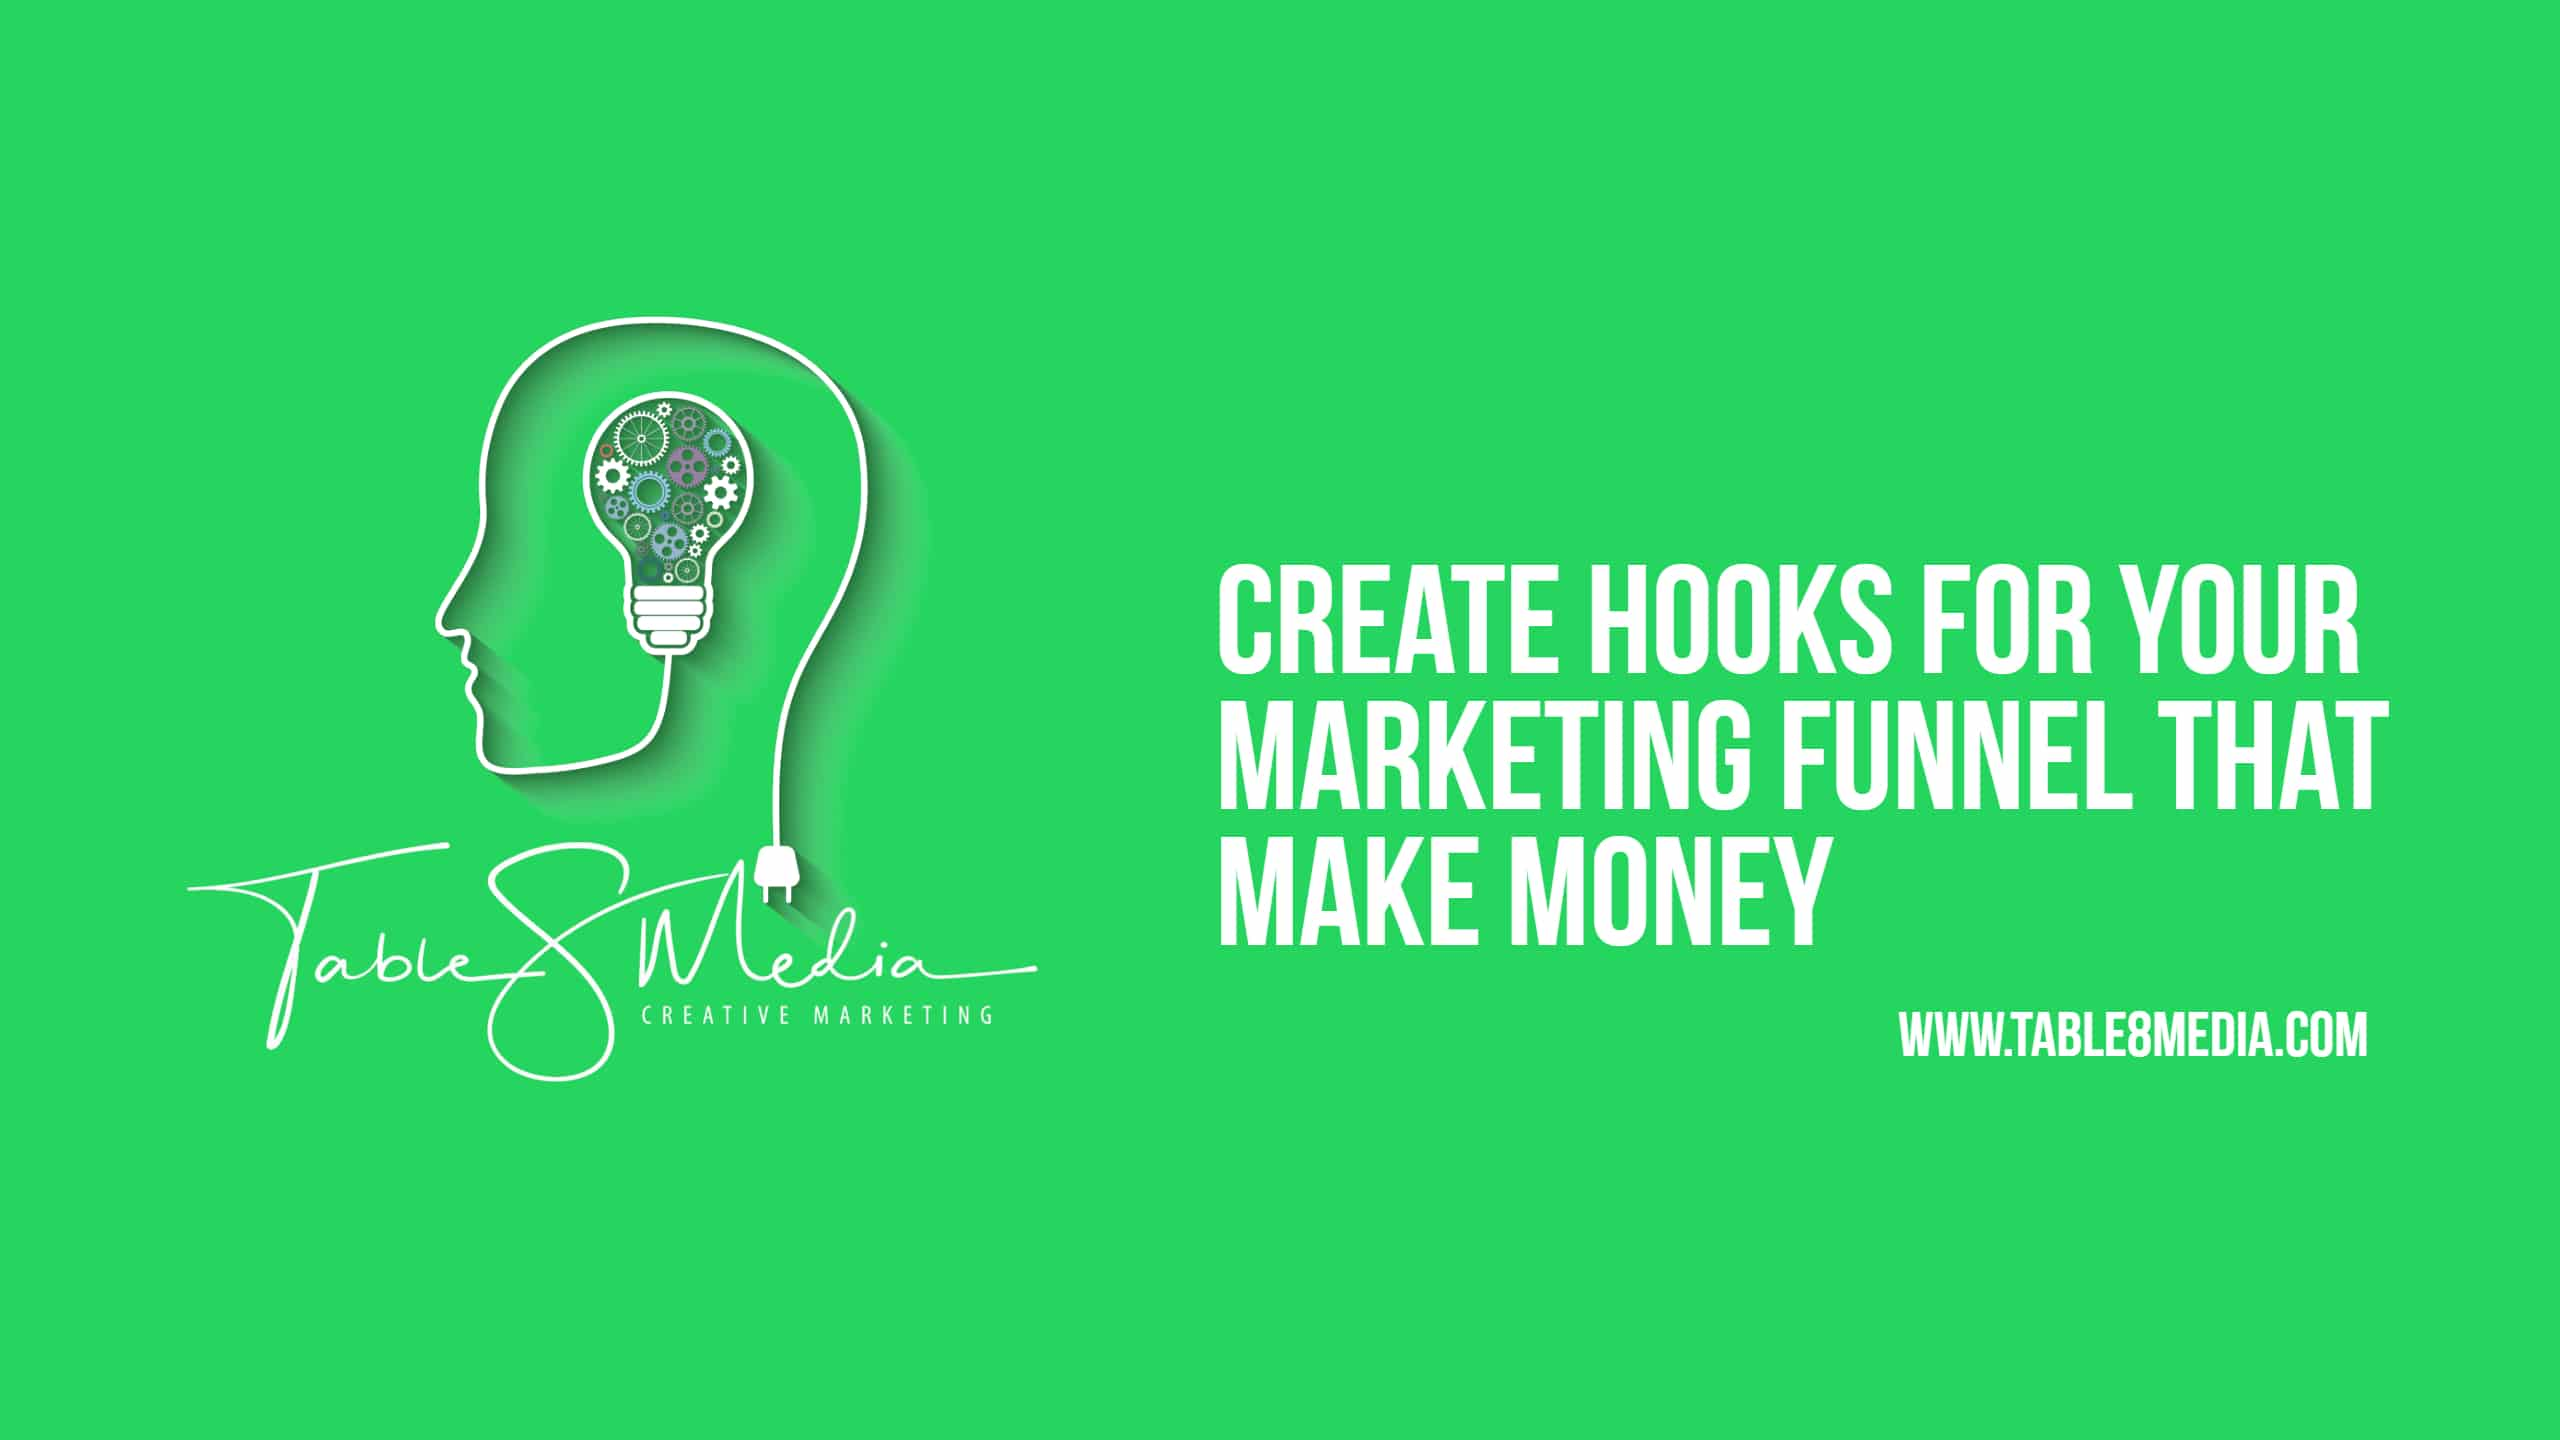 Create the right hooks for your marketing funnel and make money